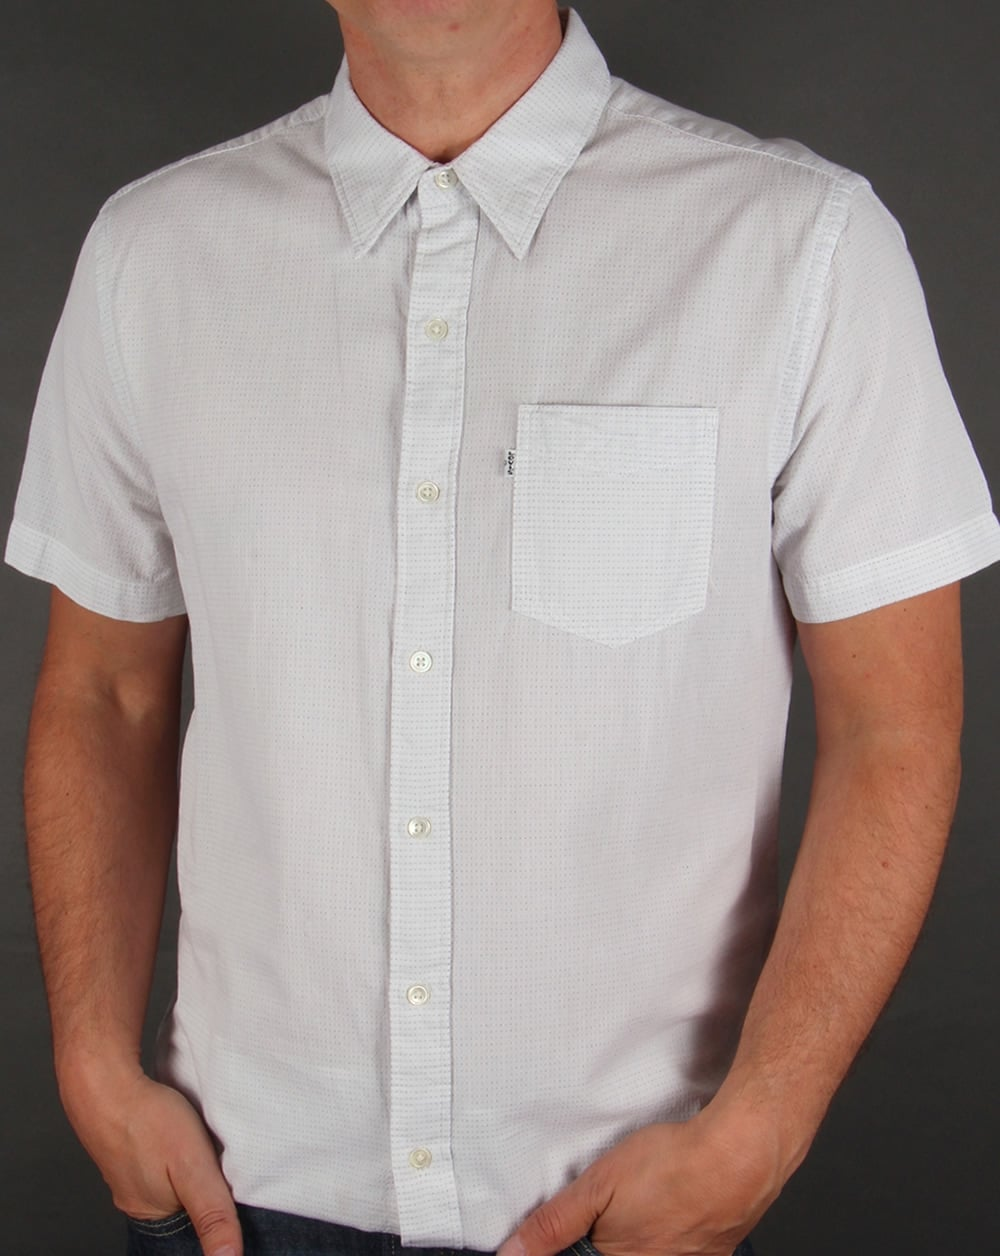 1d8331402 Levis Sunset One Pocket Short Sleeve Shirt Chalky White